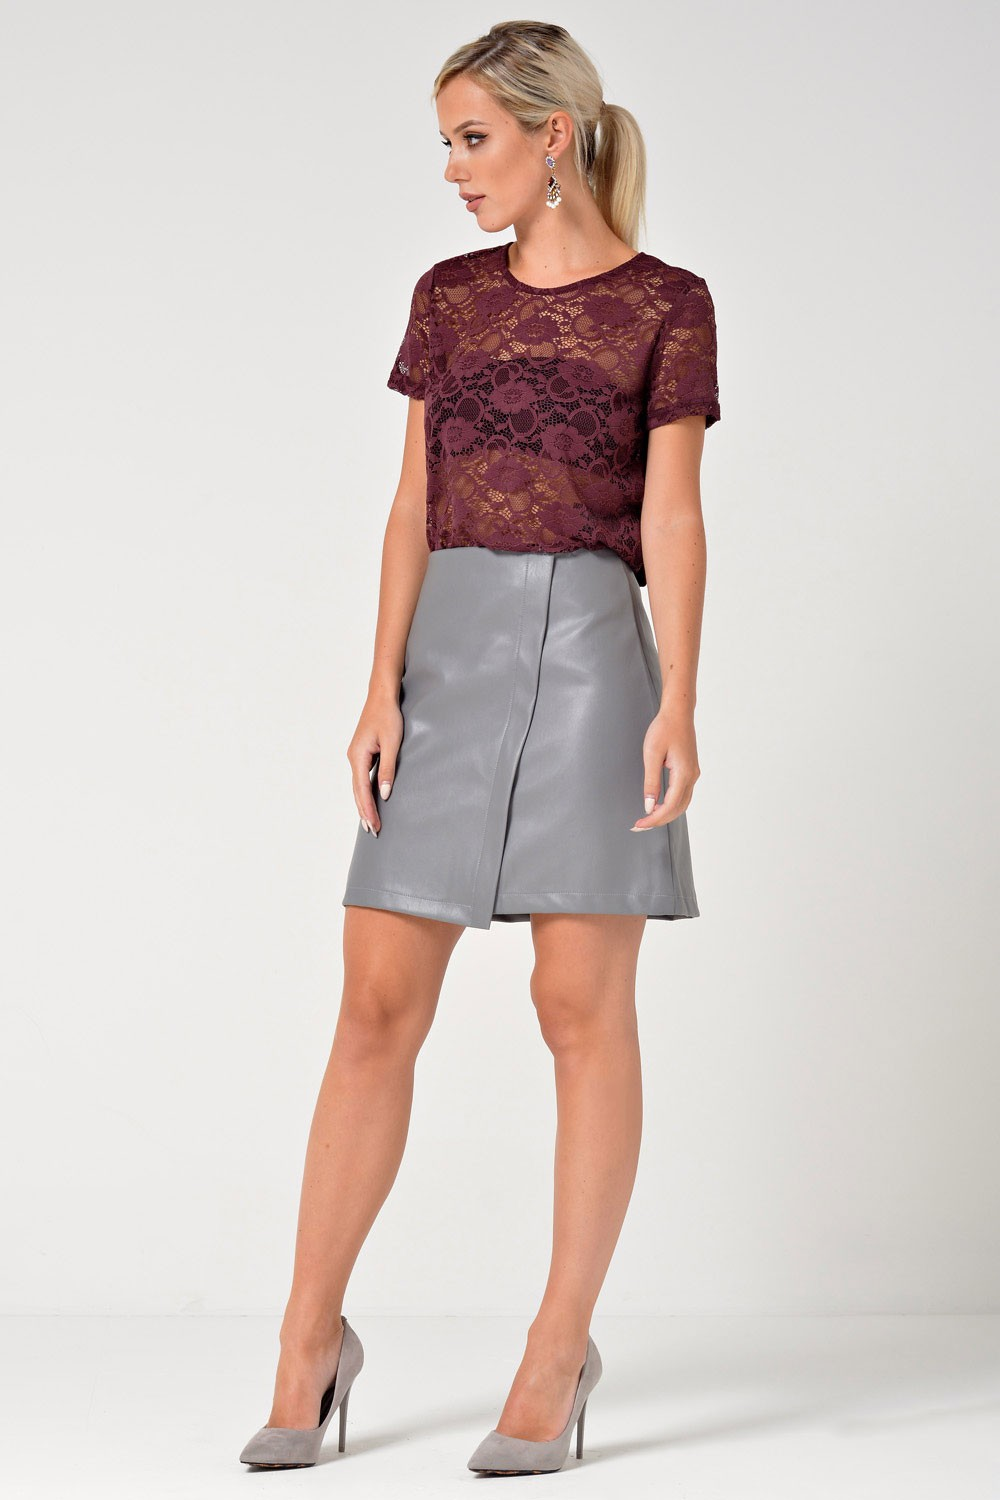 saint maine andrea faux leather skirt in grey | iclothing